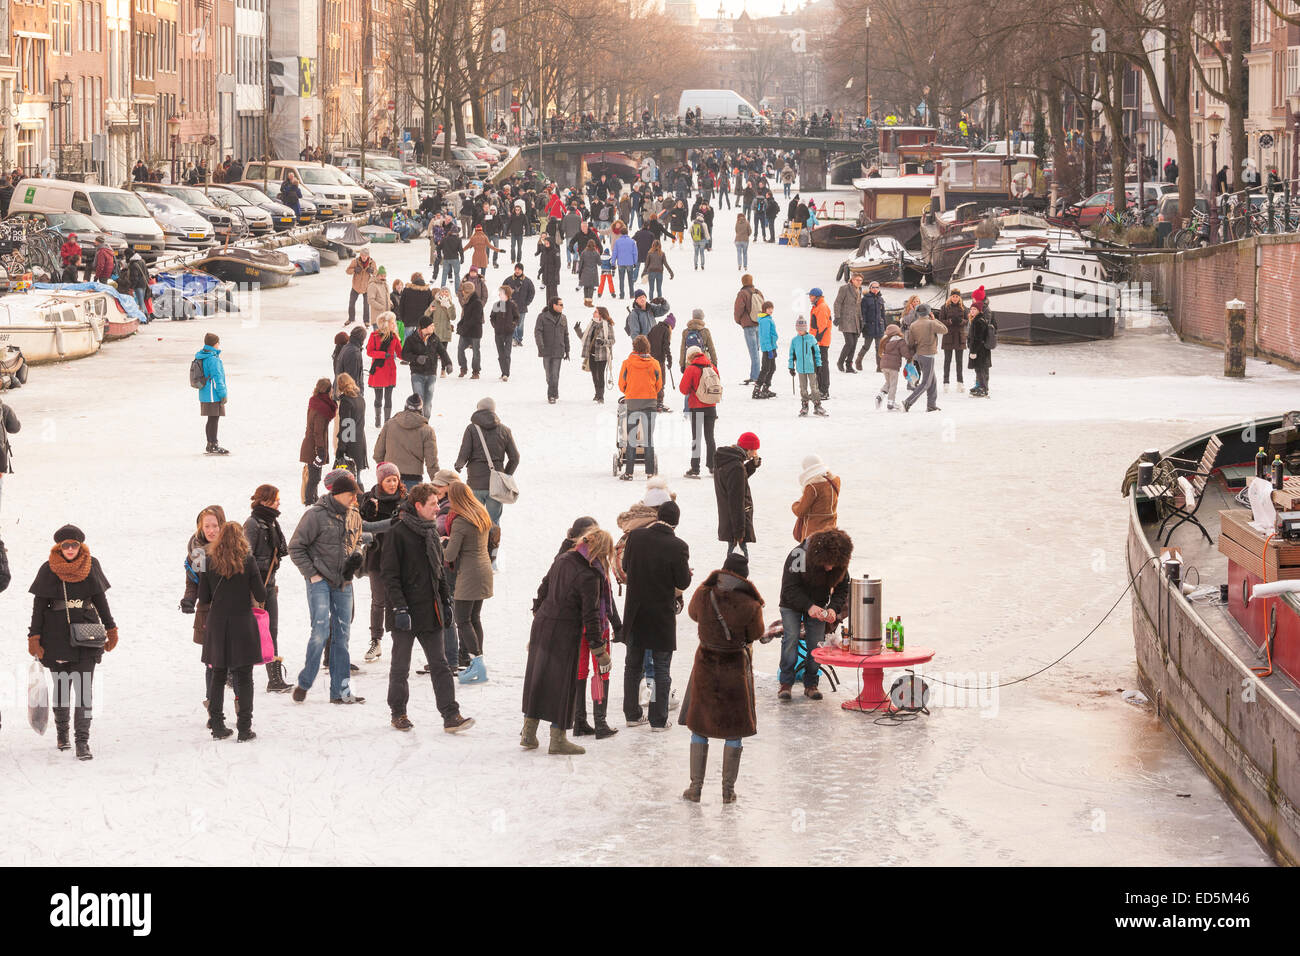 Amsterdam Ice Skating on a frozen Canal in winter. Prinsengracht Canal. - Stock Image